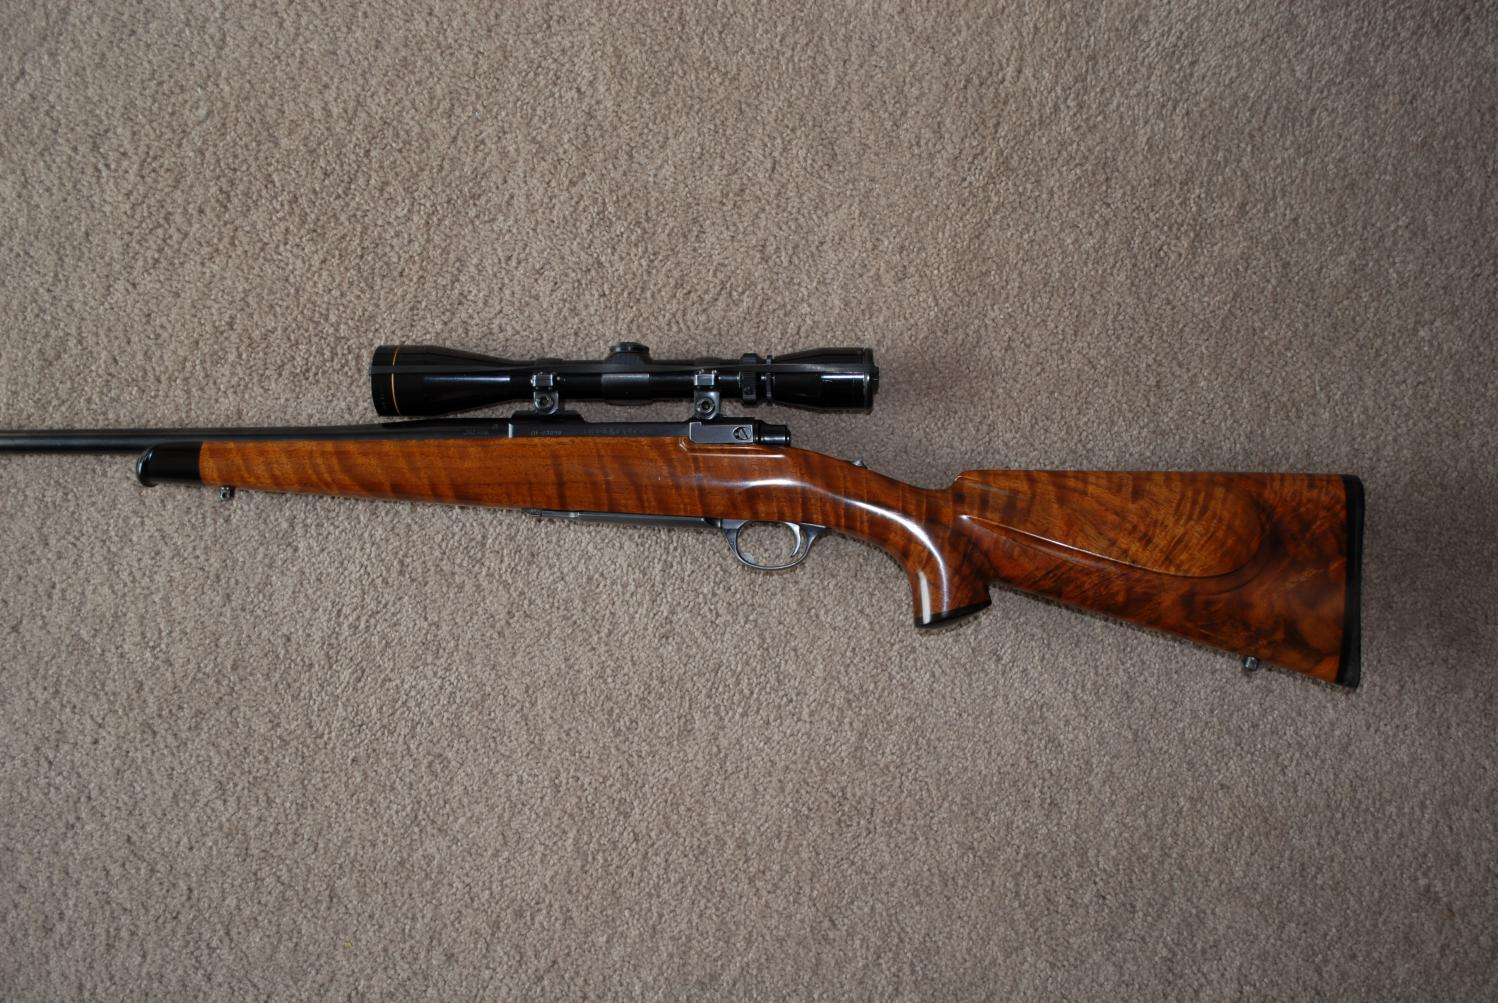 Remington 700 - free float or not? - Shooters Forum